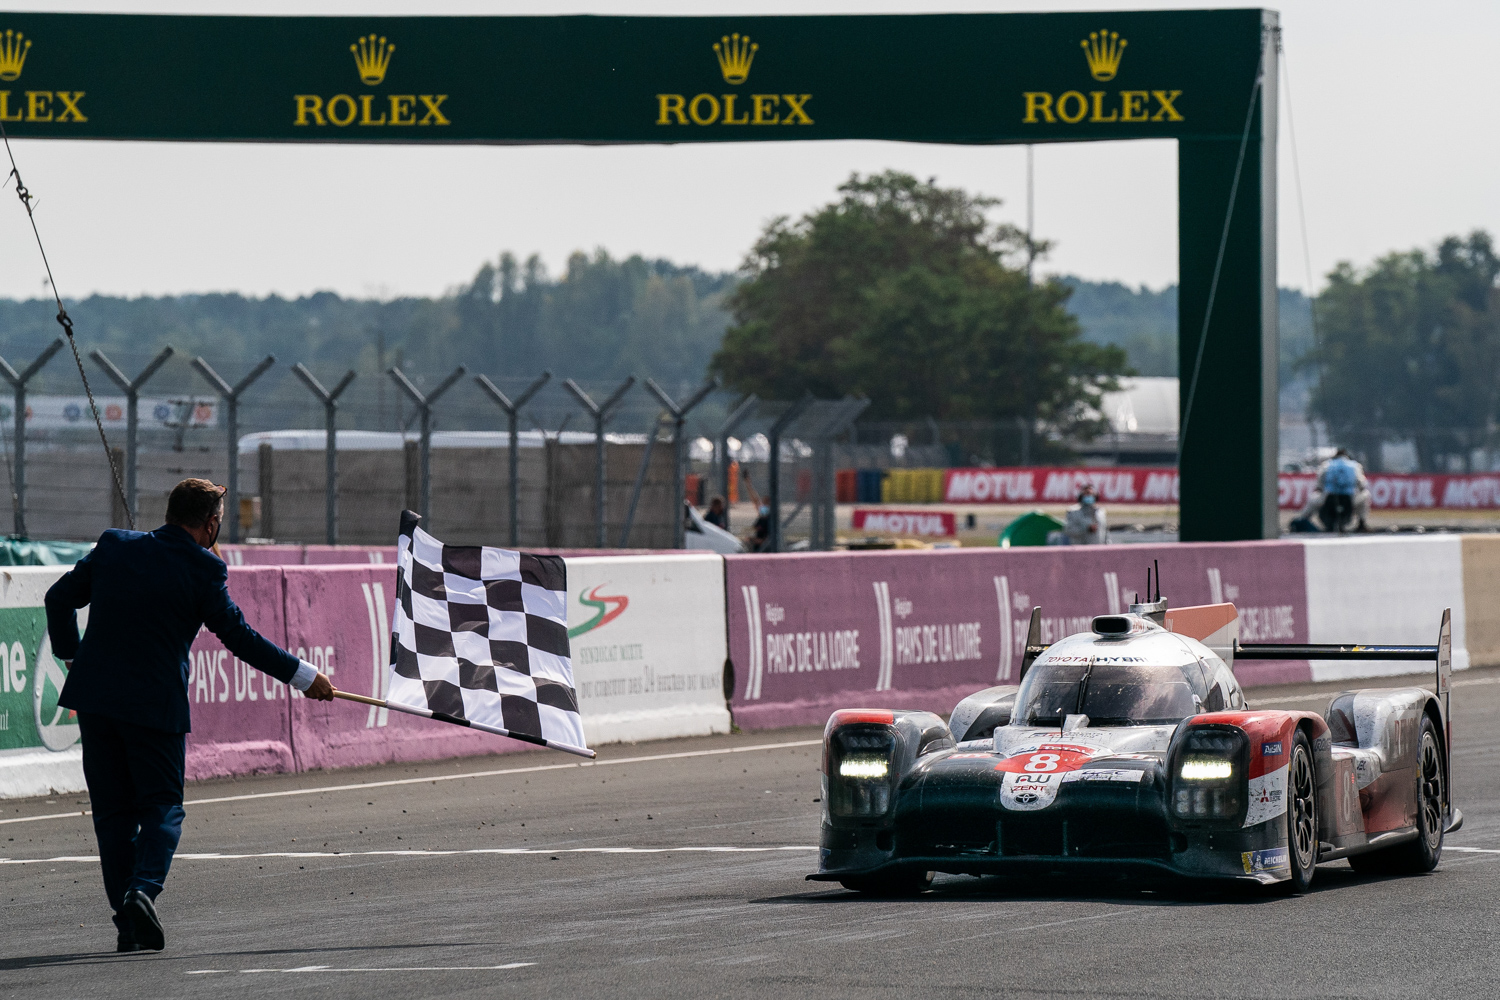 Car News | Toyota makes it 3-in-a-row at Le Mans | CompleteCar.ie